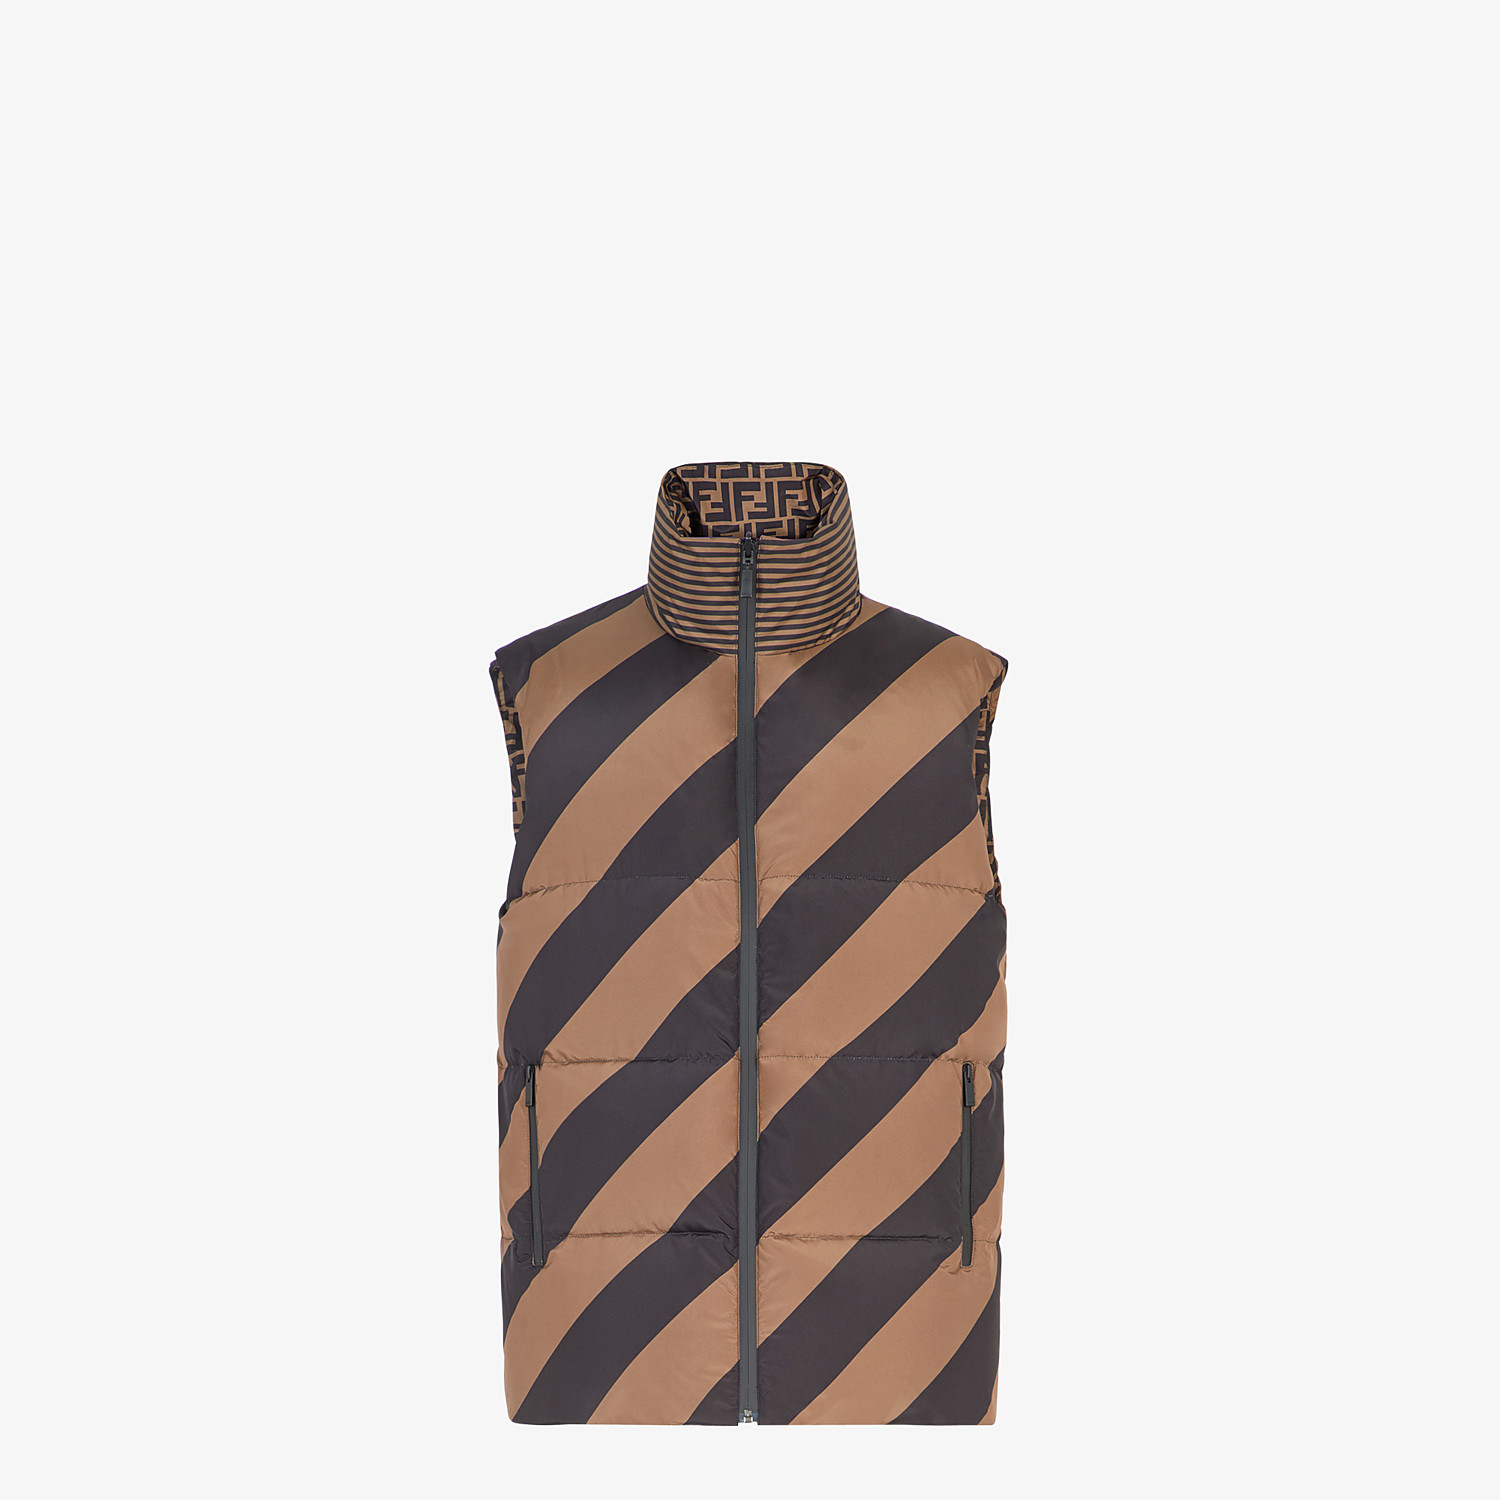 FENDI GILET - Brown nylon gilet - view 4 detail